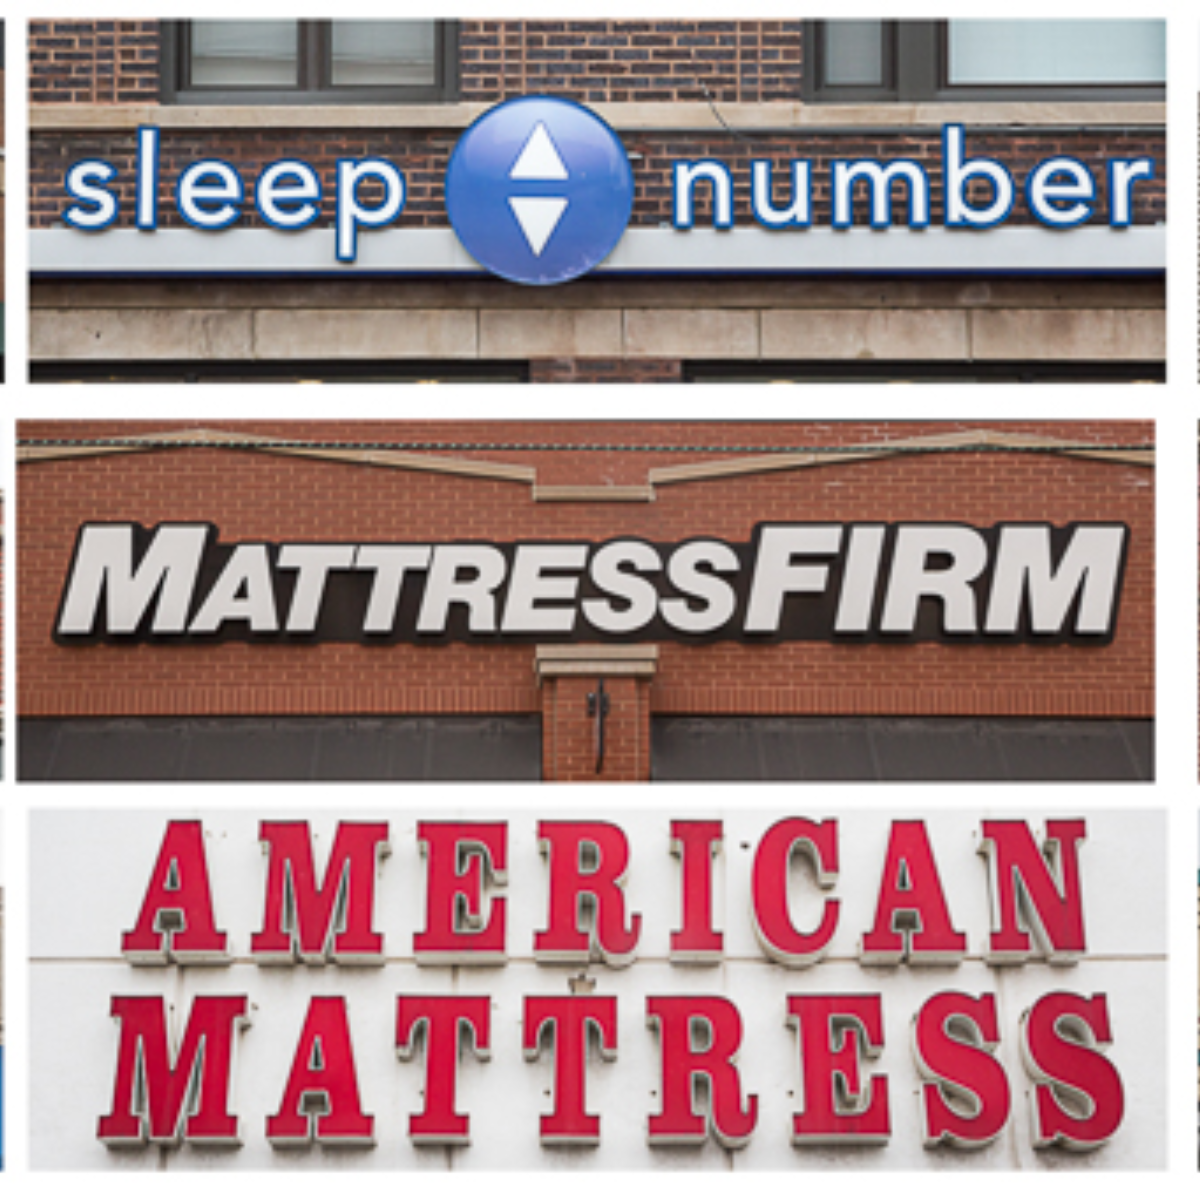 Why Does Chicago Have So Many Mattress Stores?